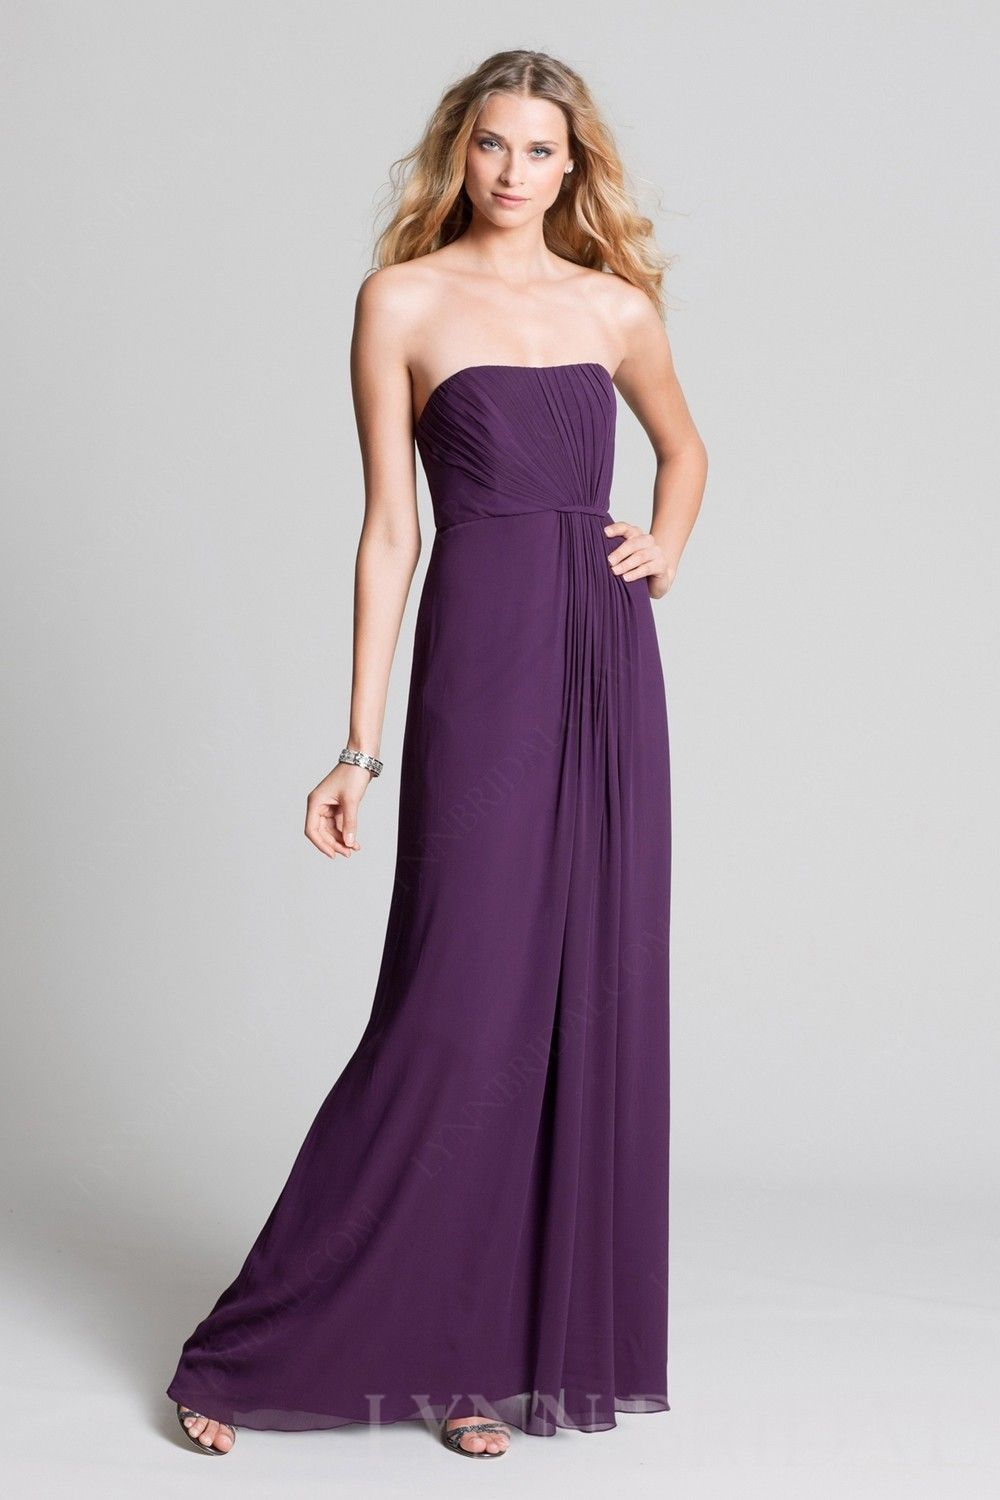 Ruched A Line Strapless Chiffon Long Sweetheart $219.99 Long Bridesmaid Dresses